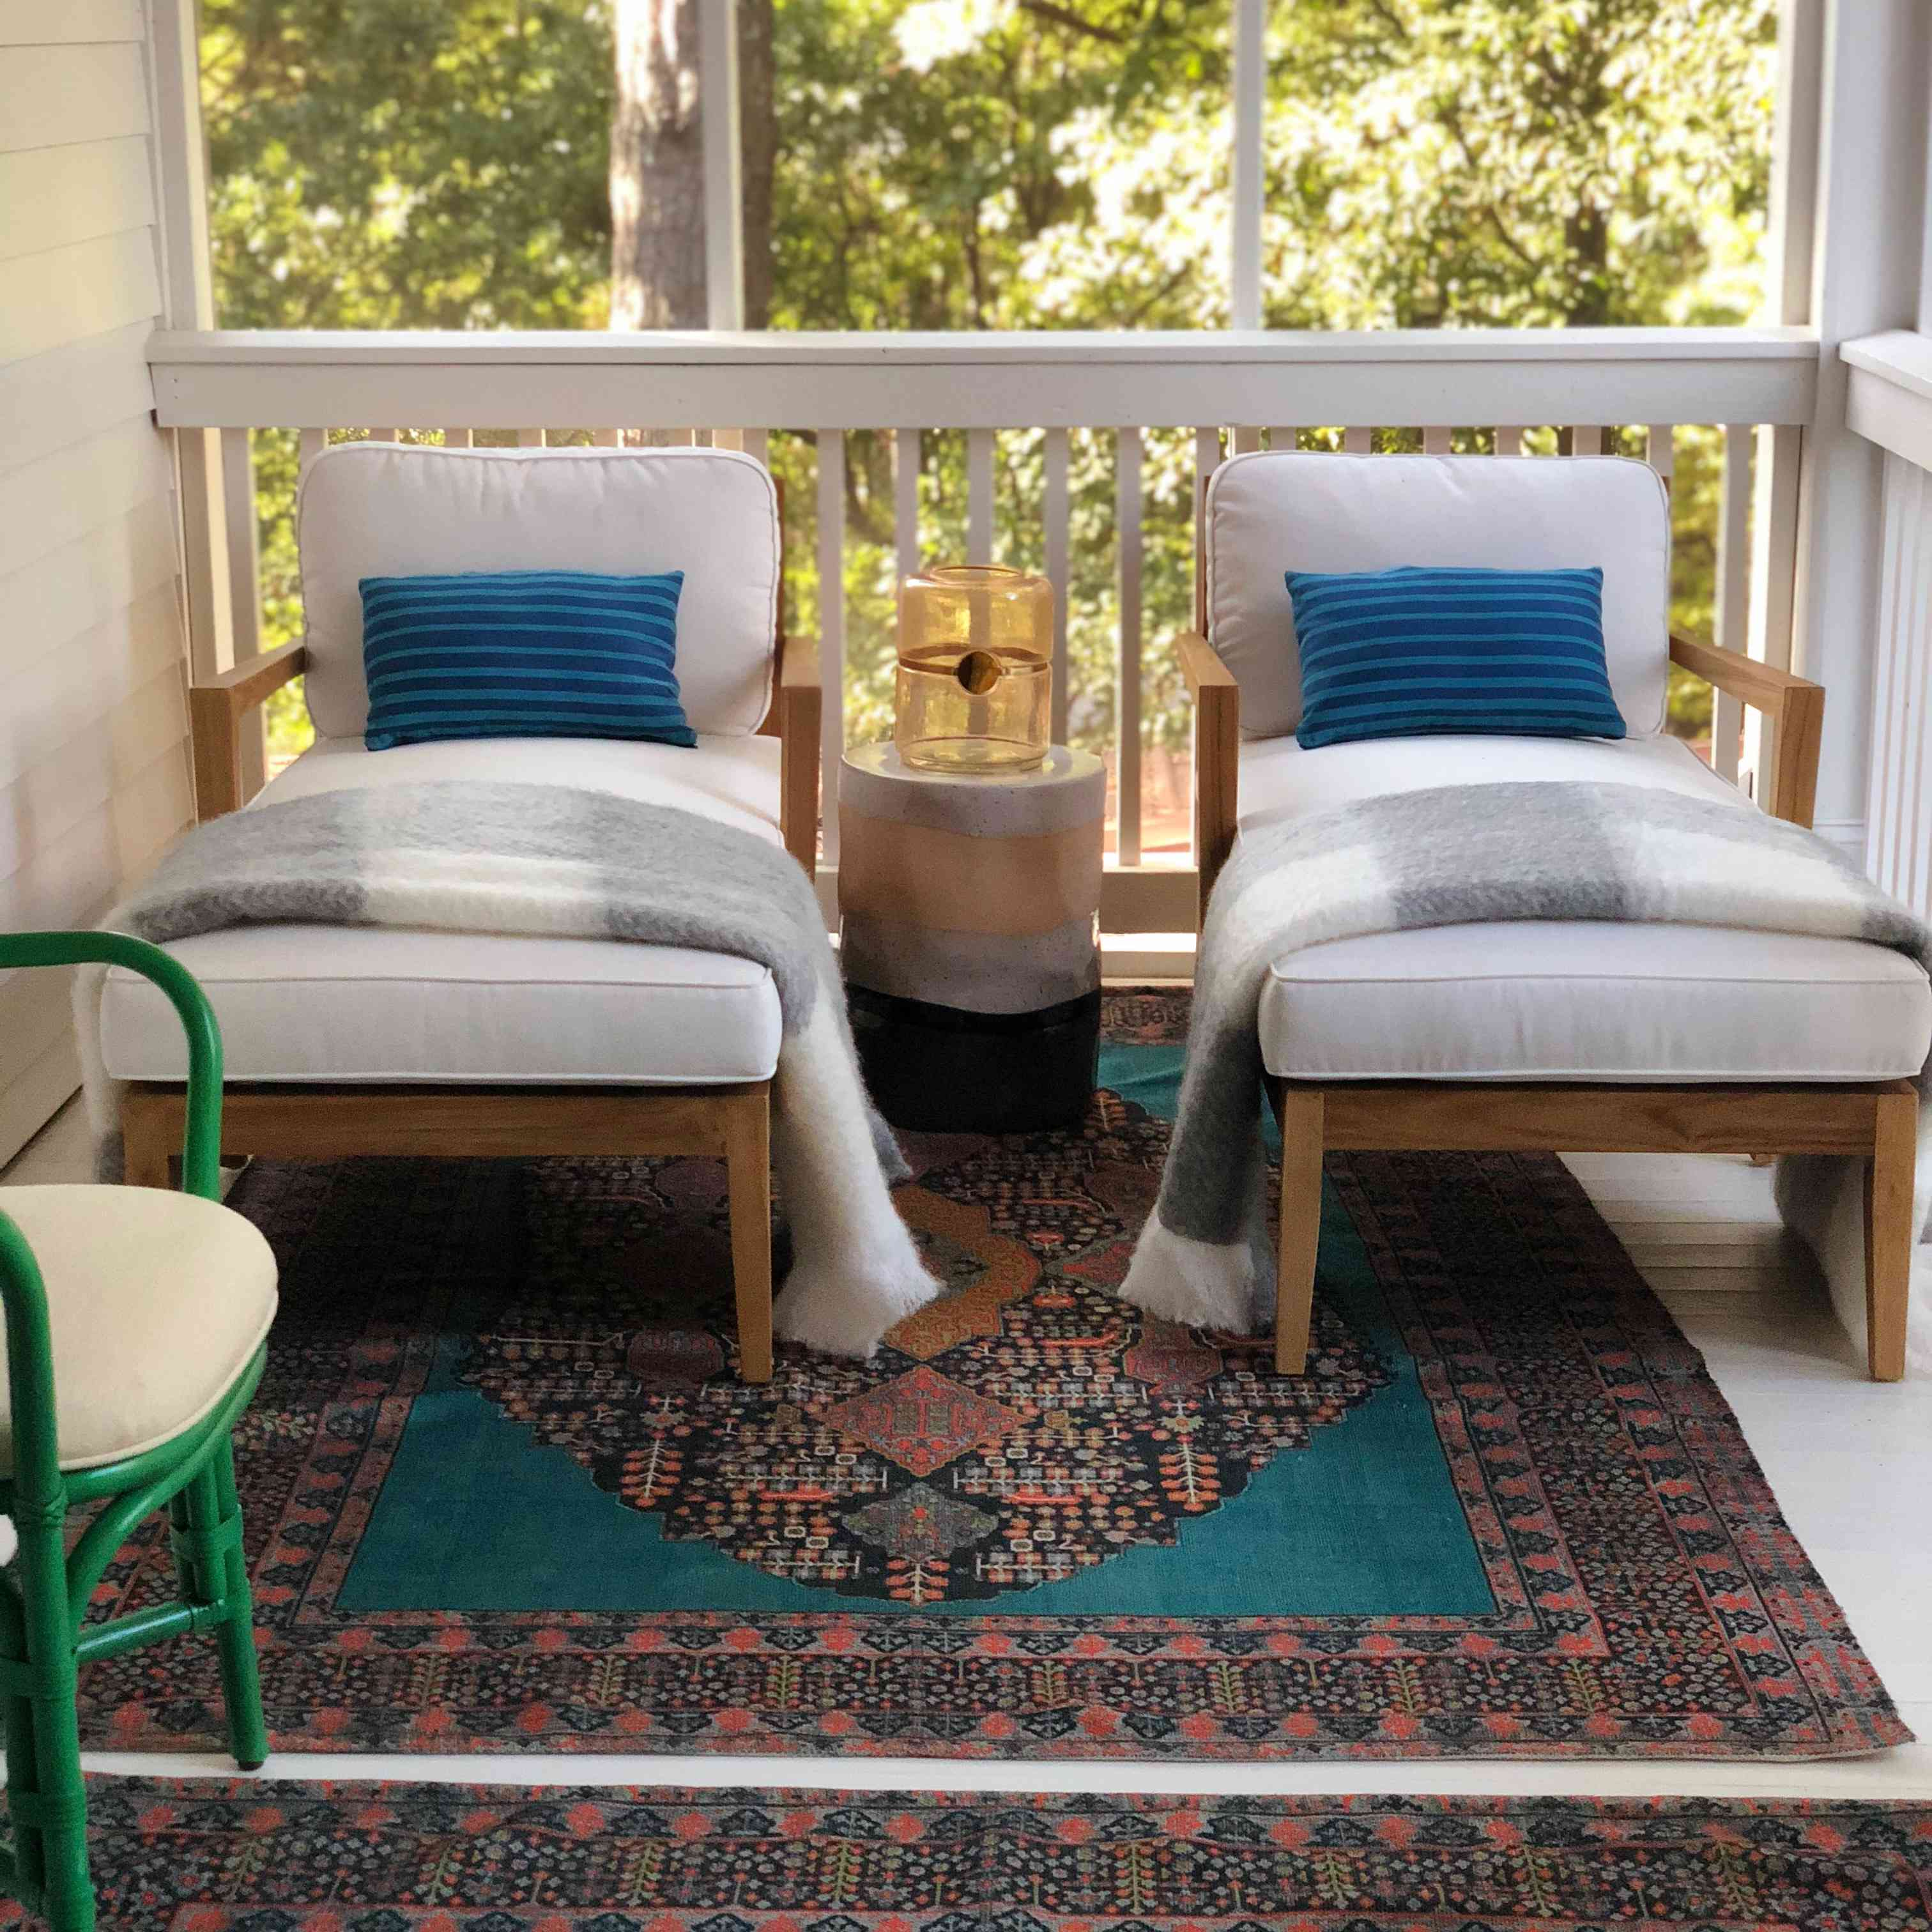 Outdoor patio with a rug